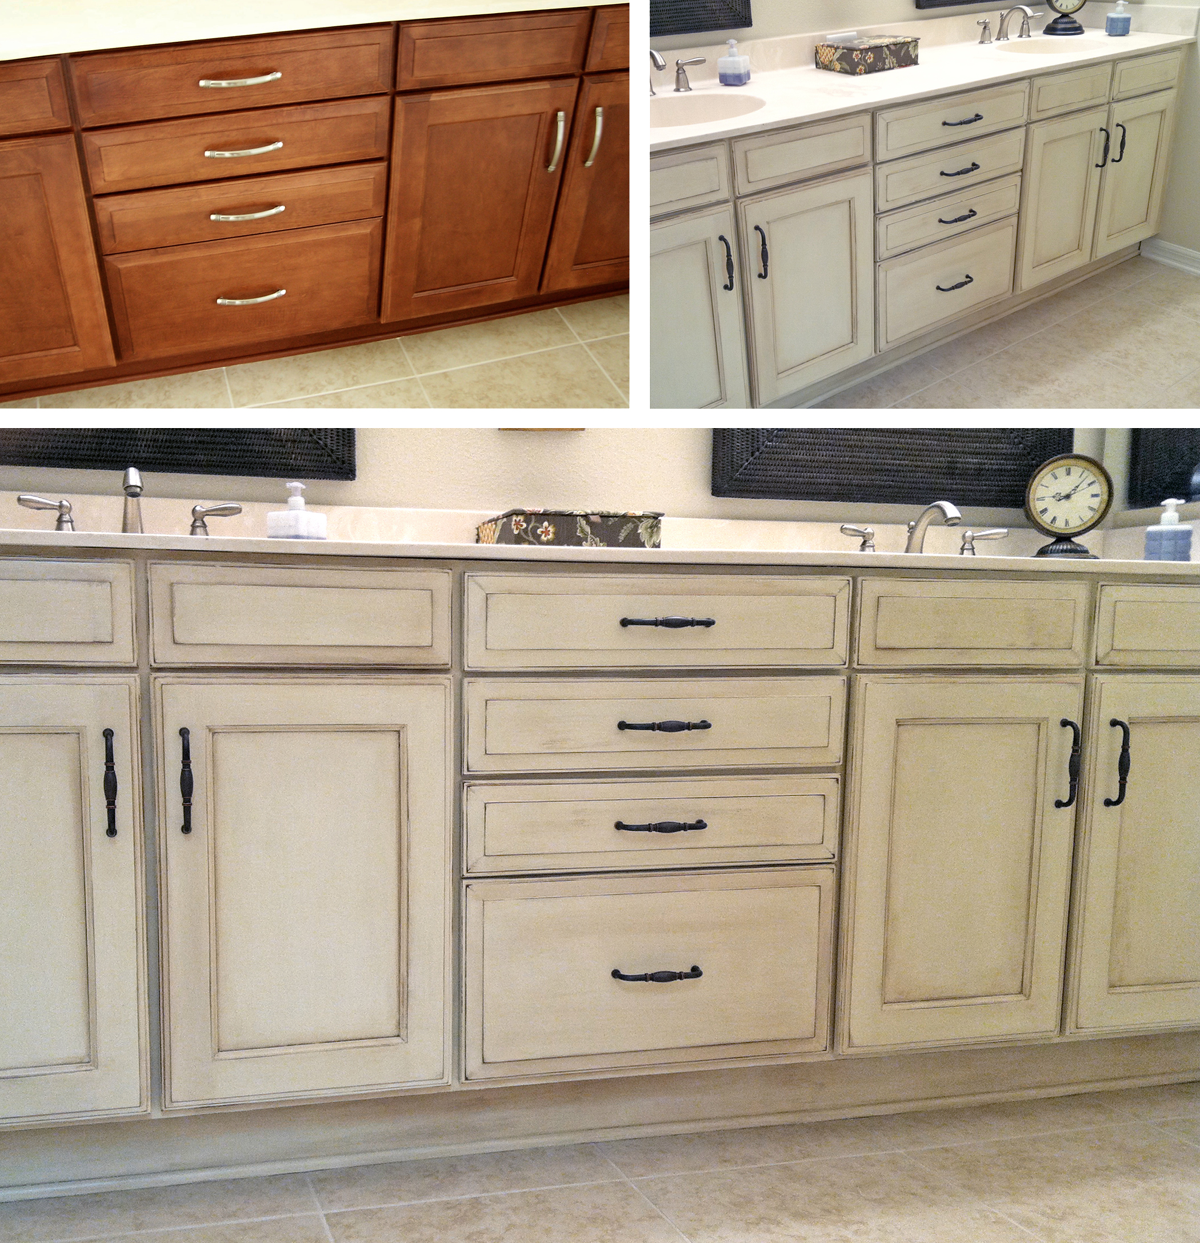 Bathroom Vanity Painted With Annie Sloan Chalk Paint First Coat Old Ochre Then Old White Chalk Paint Kitchen Cabinets Chalk Paint Kitchen Painting Cabinets